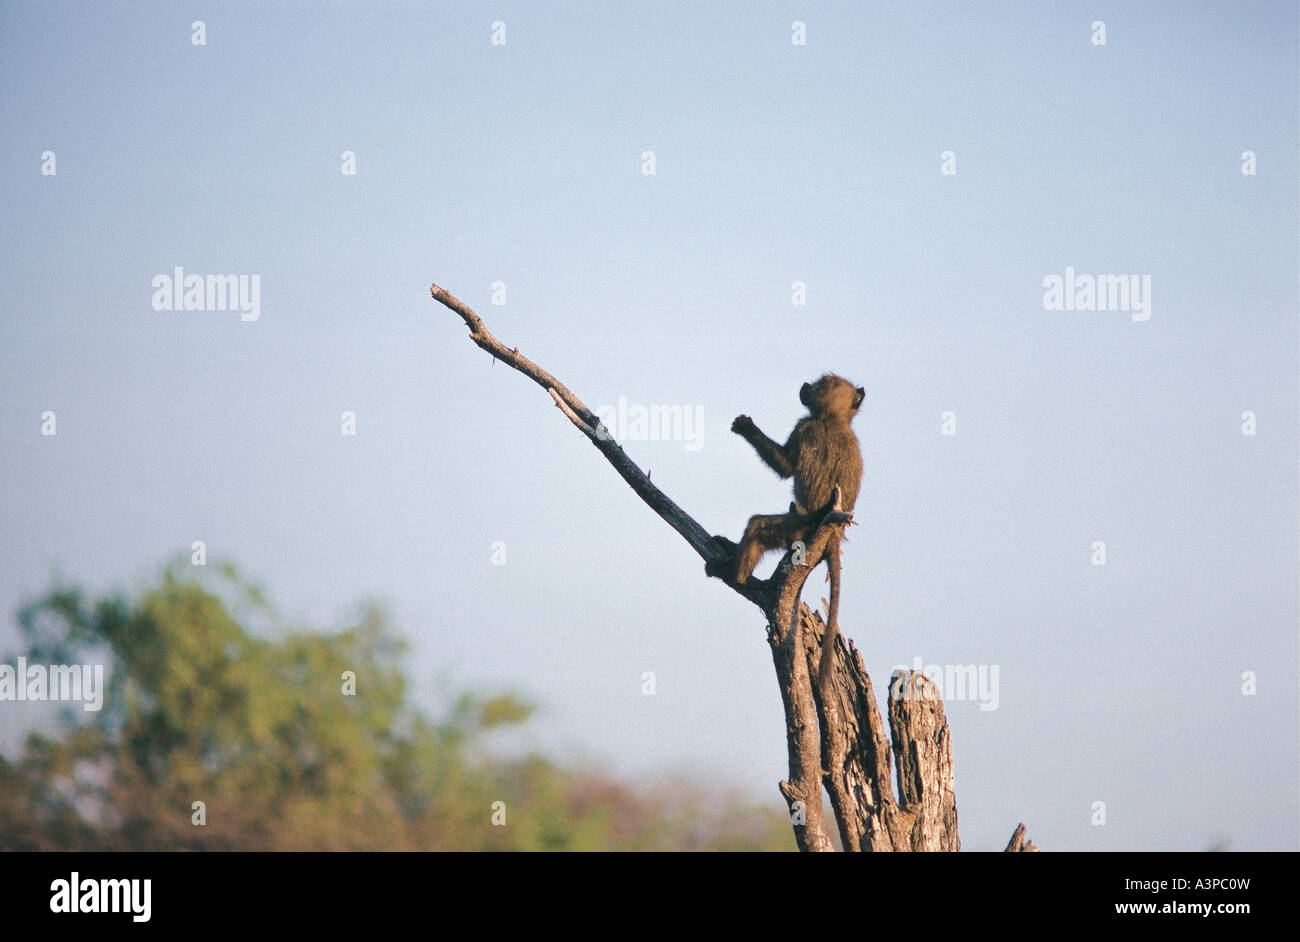 Young Olive Baboon perched on dead tree stump in Samburu National Reserve Kenya - Stock Image